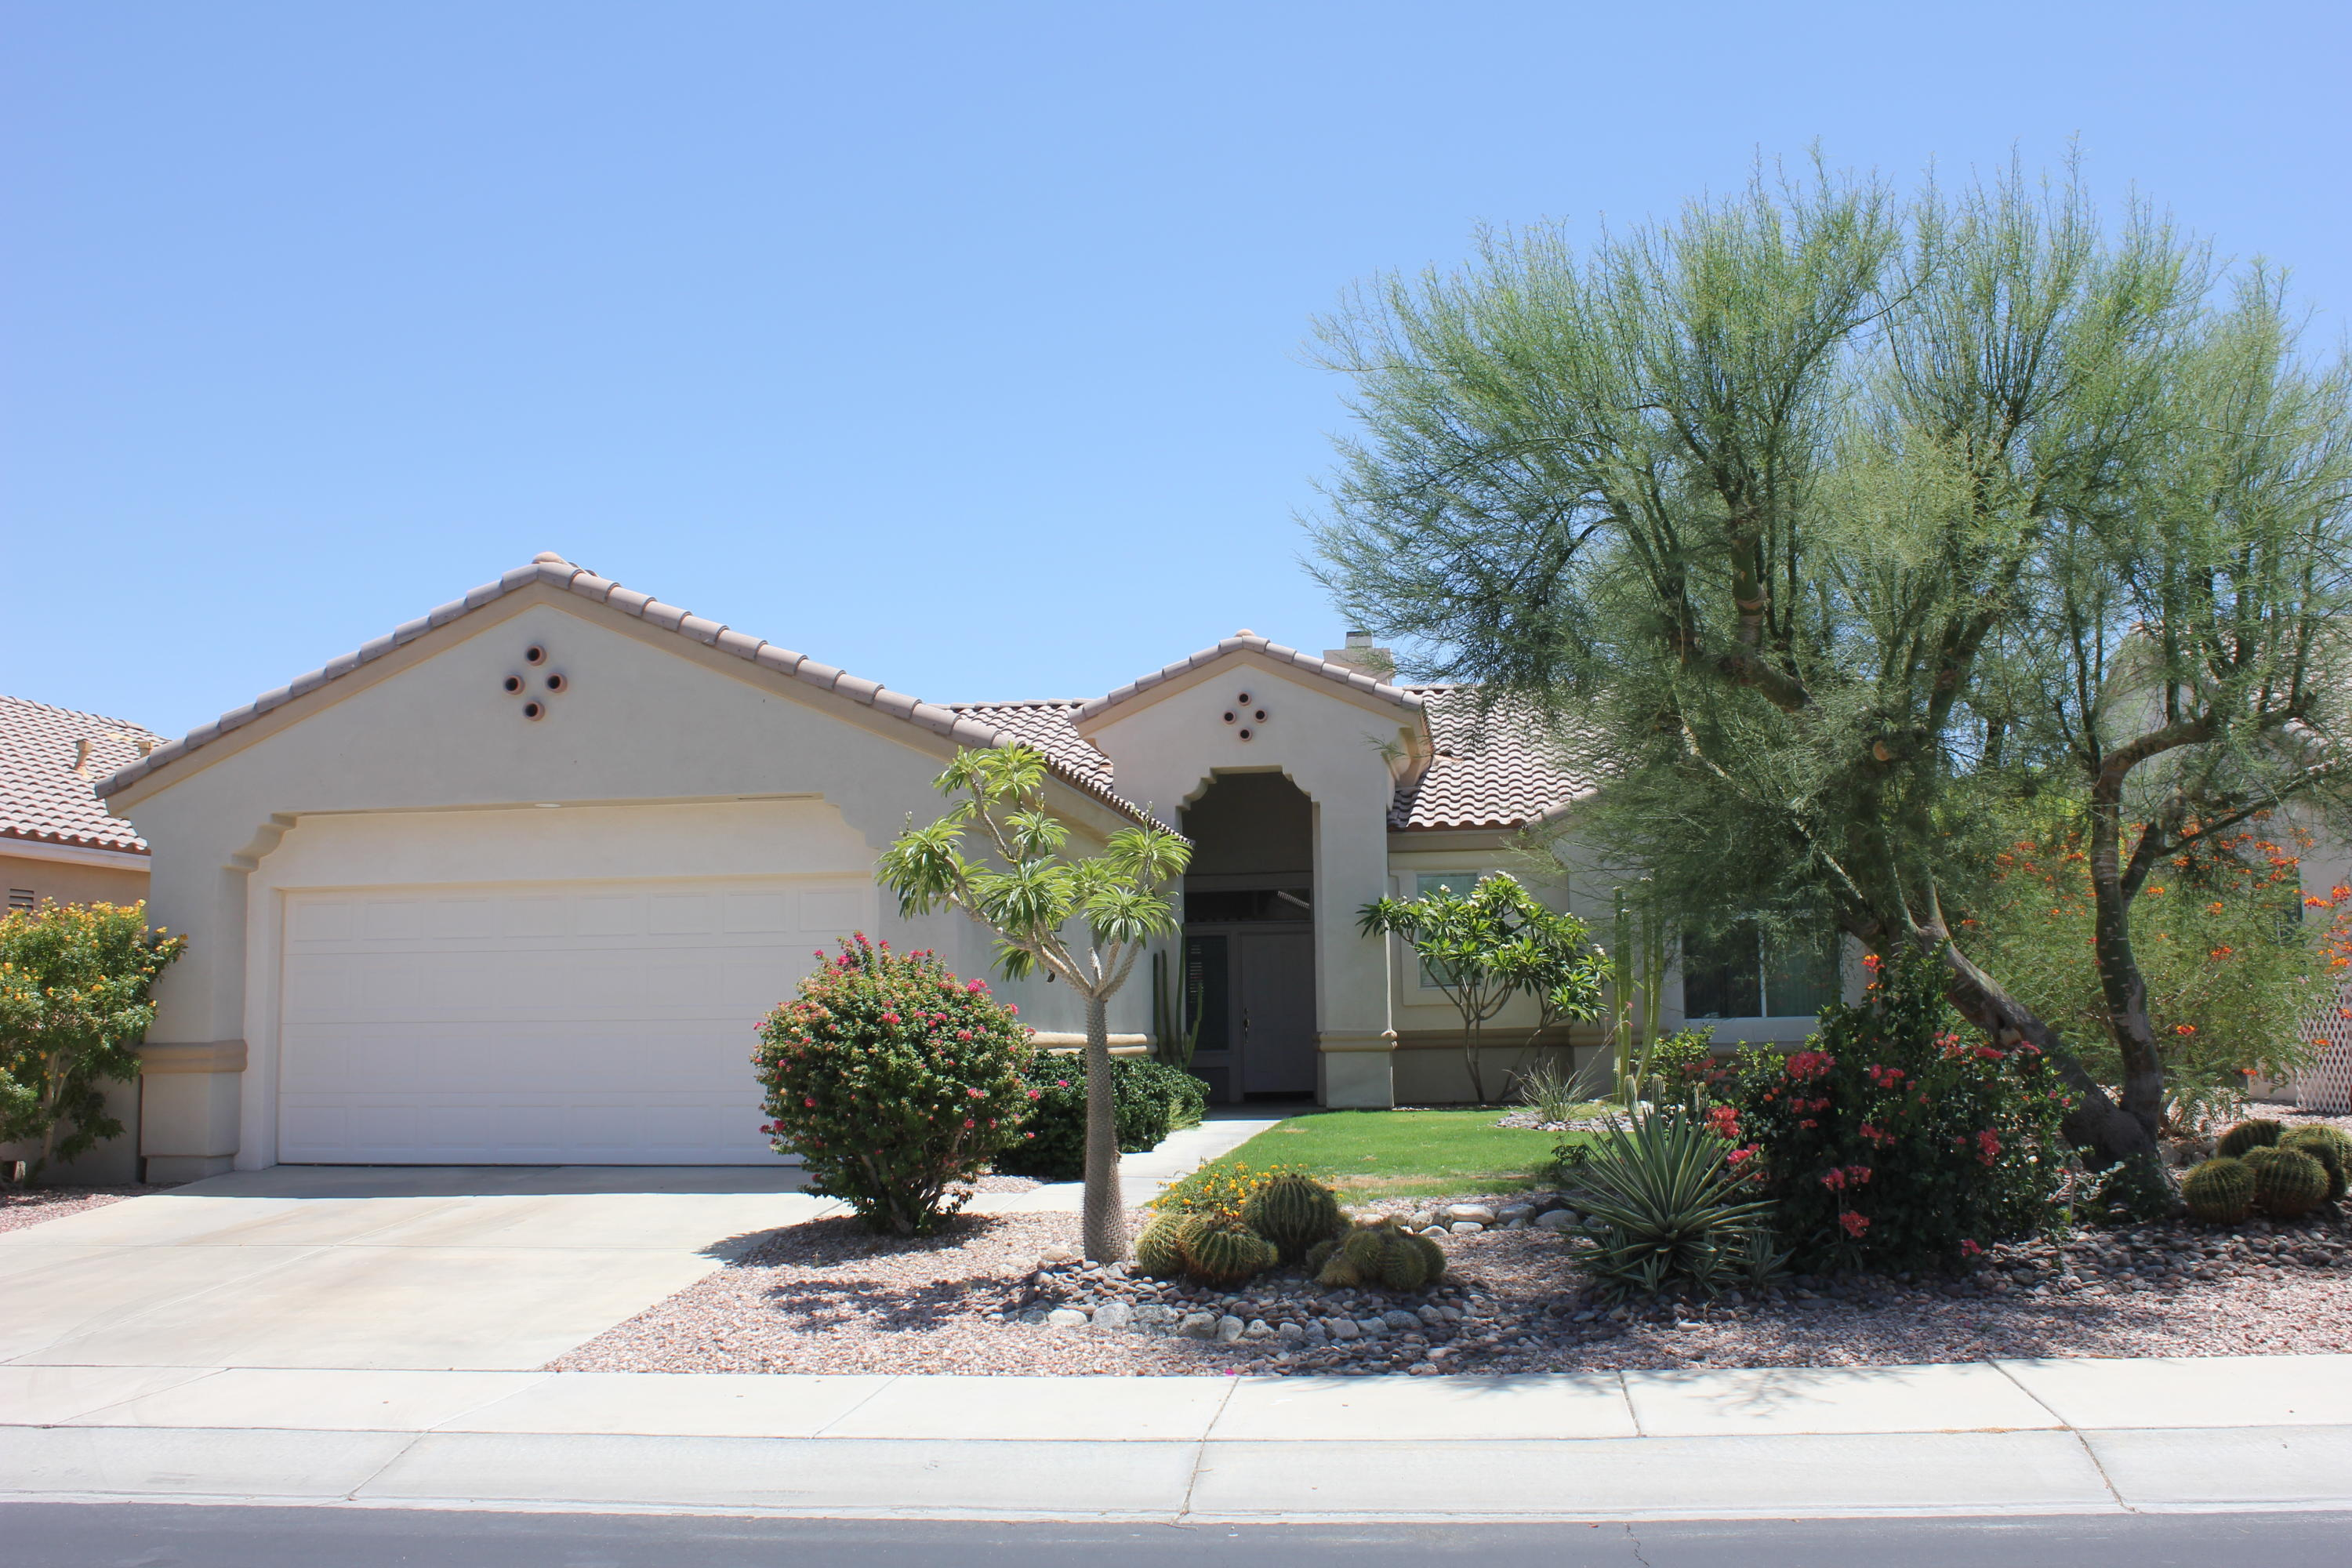 Photo of 78725 Moonstone Lane, Palm Desert, CA 92211